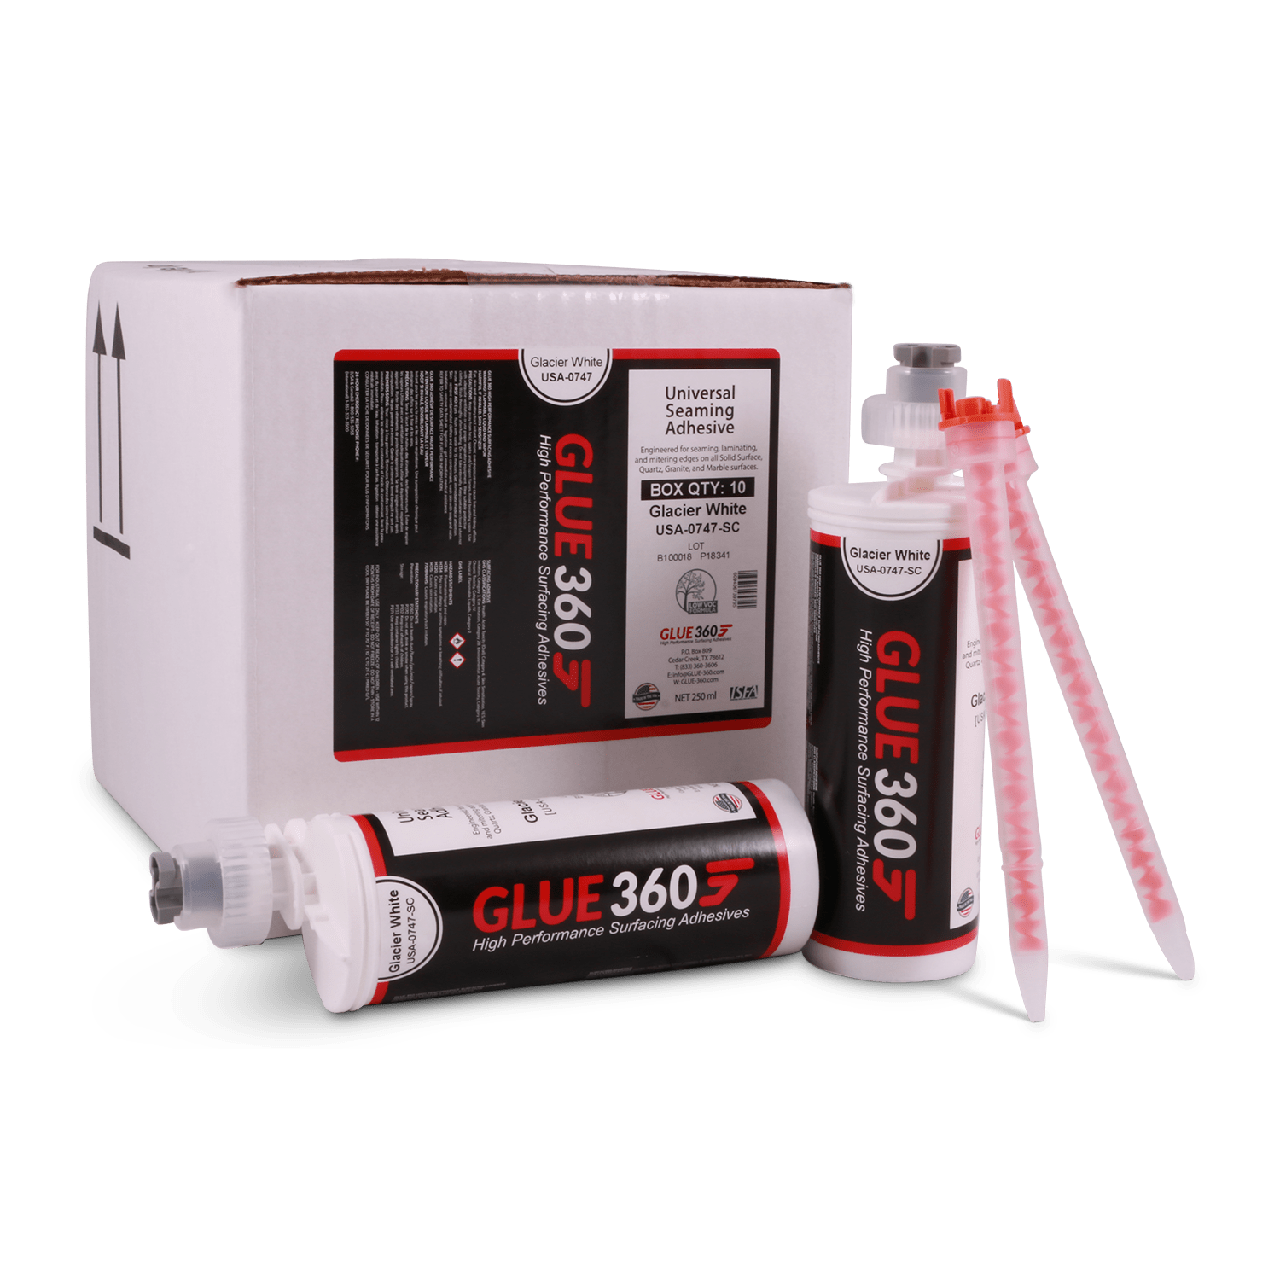 Glue 360 Introduces a New Line of Universal Adhesives